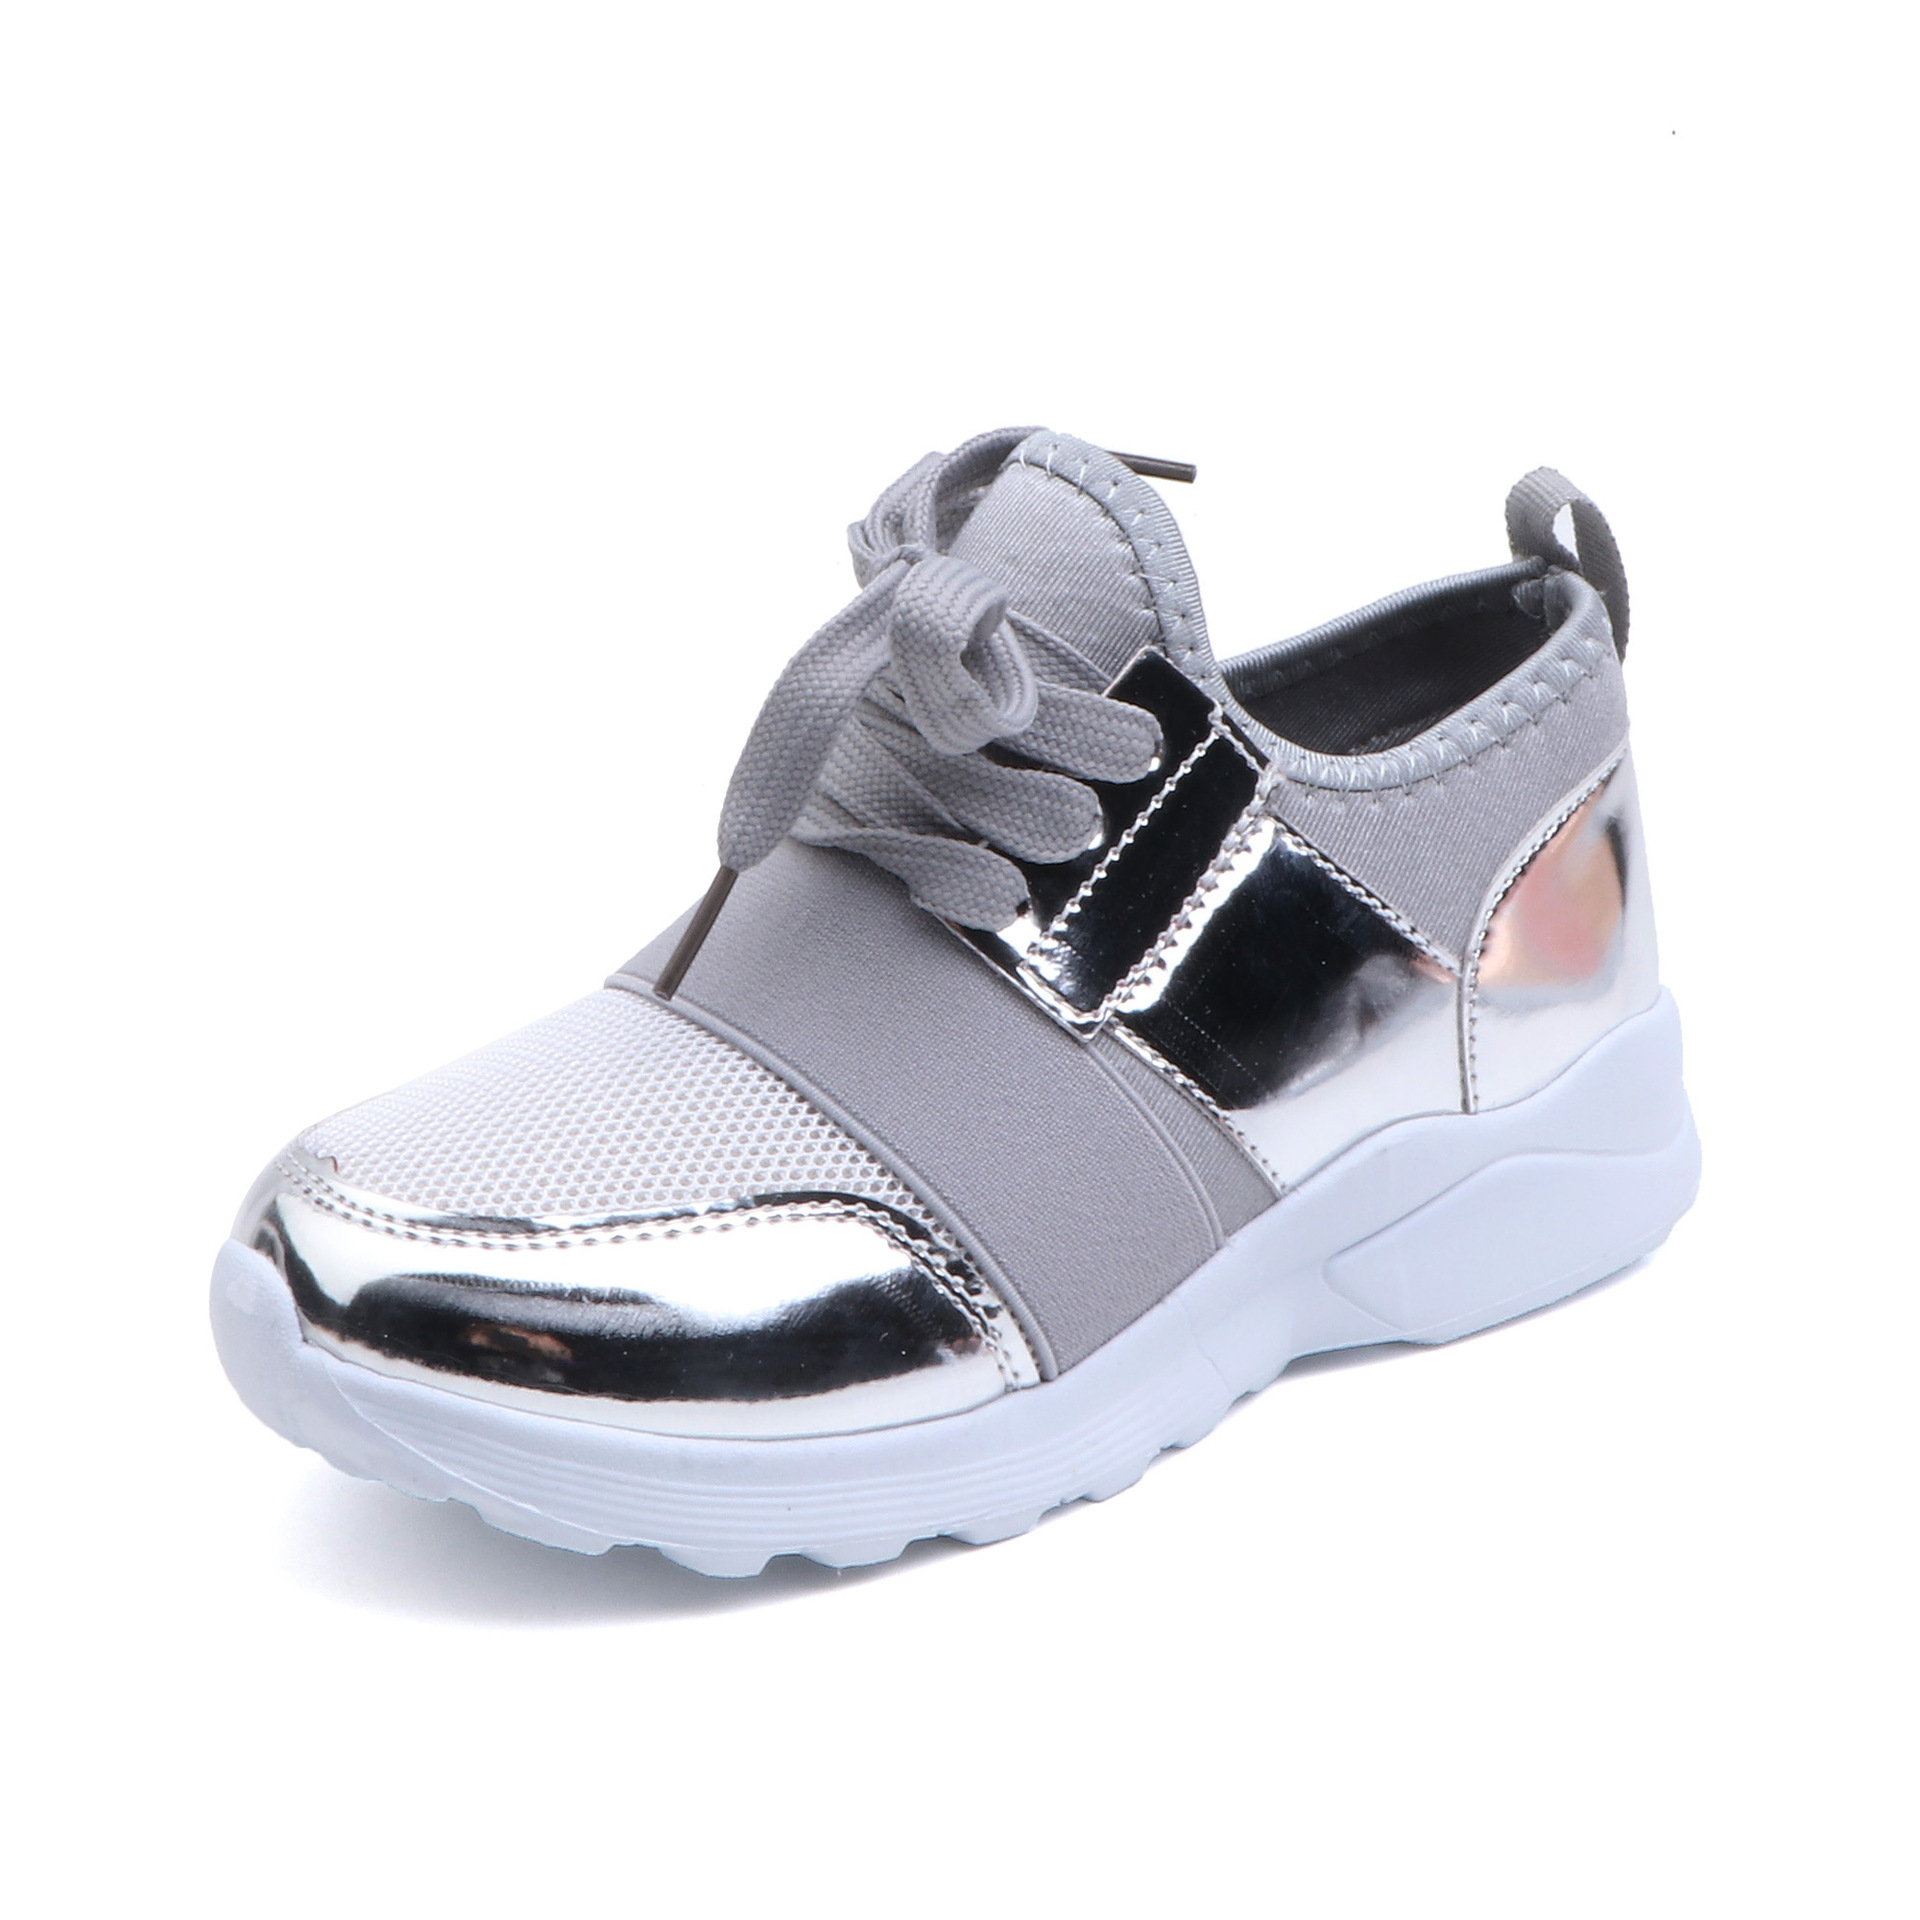 COZULMA New Kids Fashion Sneakers For Girls Children Soft Bottom Shoes Boys Light Sports Outdoor Flats